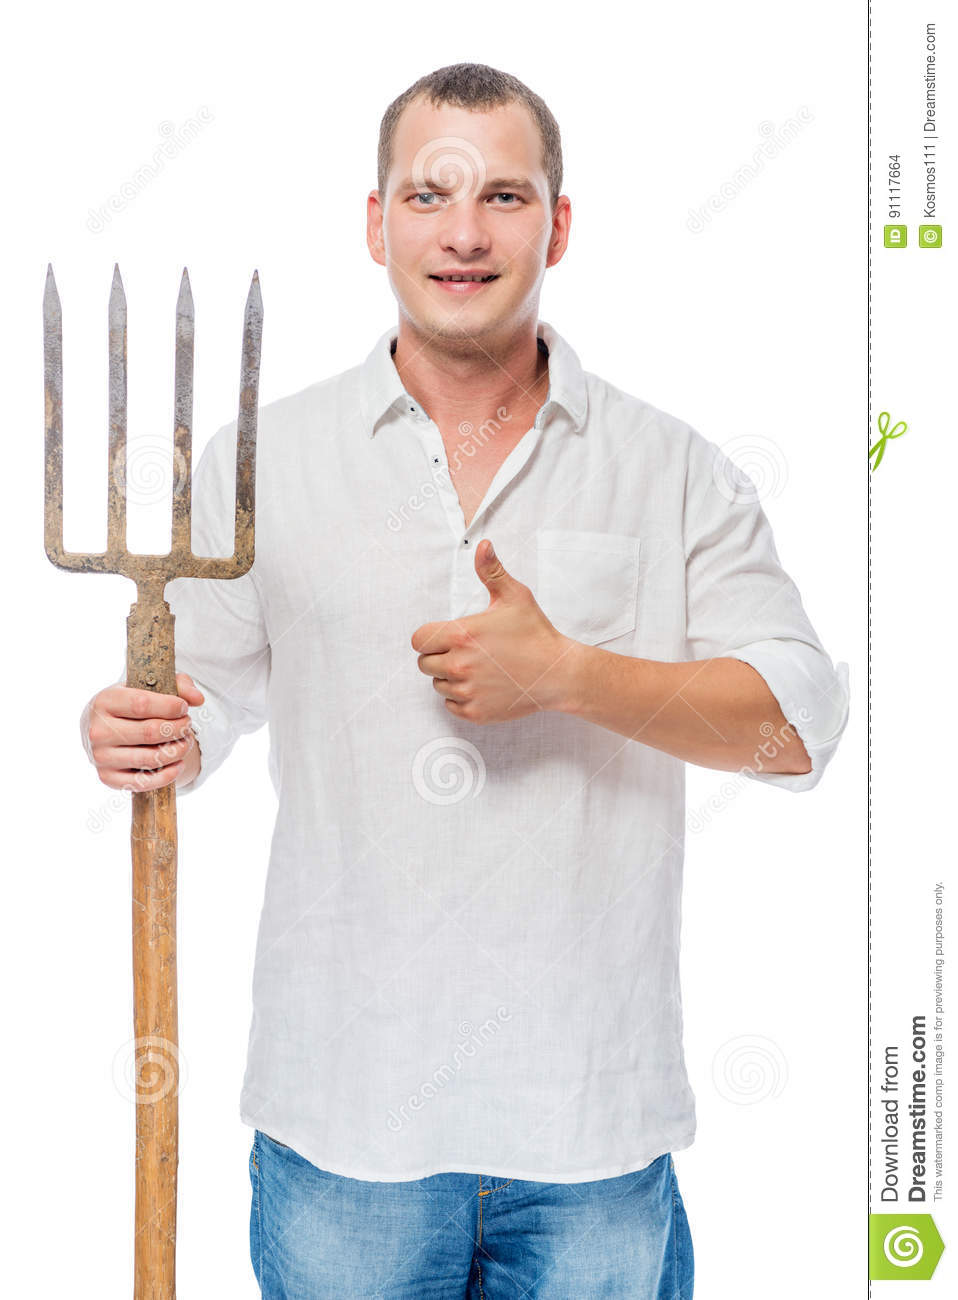 Successful gardener with a pitchfork on a white posin